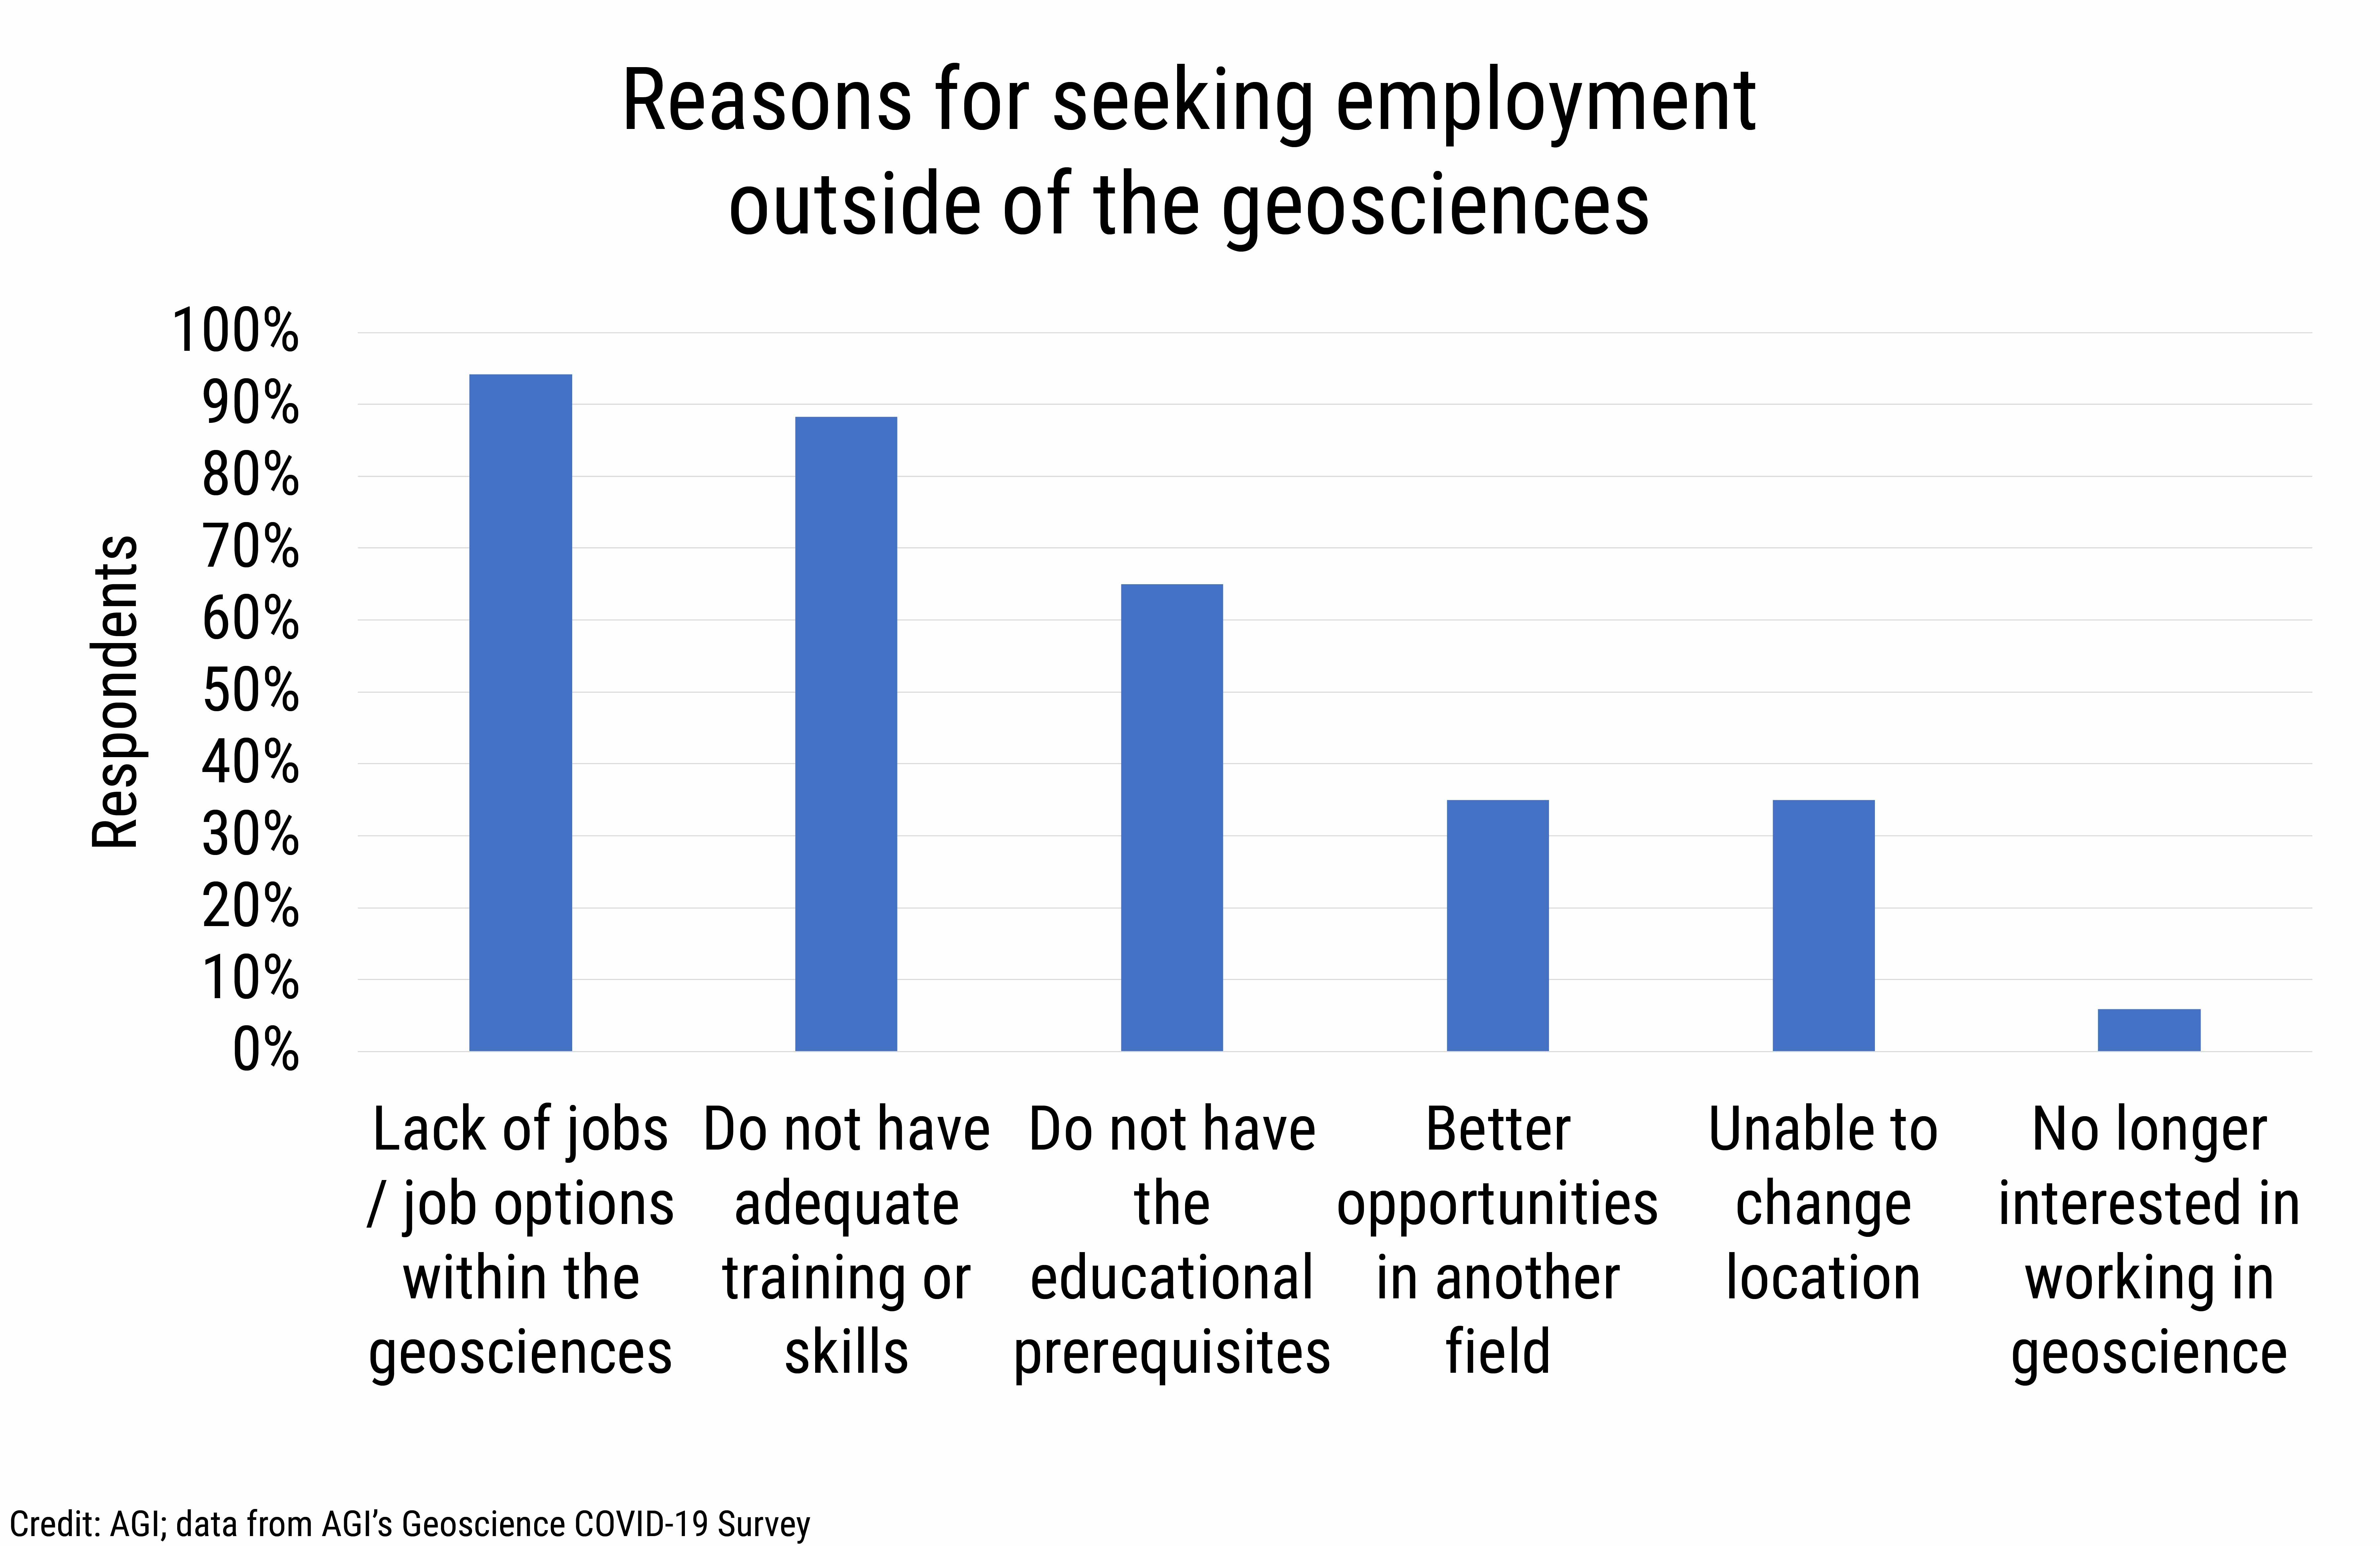 DB_2021-003_chart13: Reasons for seeking employment outside of the geosciences (Credit: AGI; data from AGI's Geoscience COVID-19 Survey)